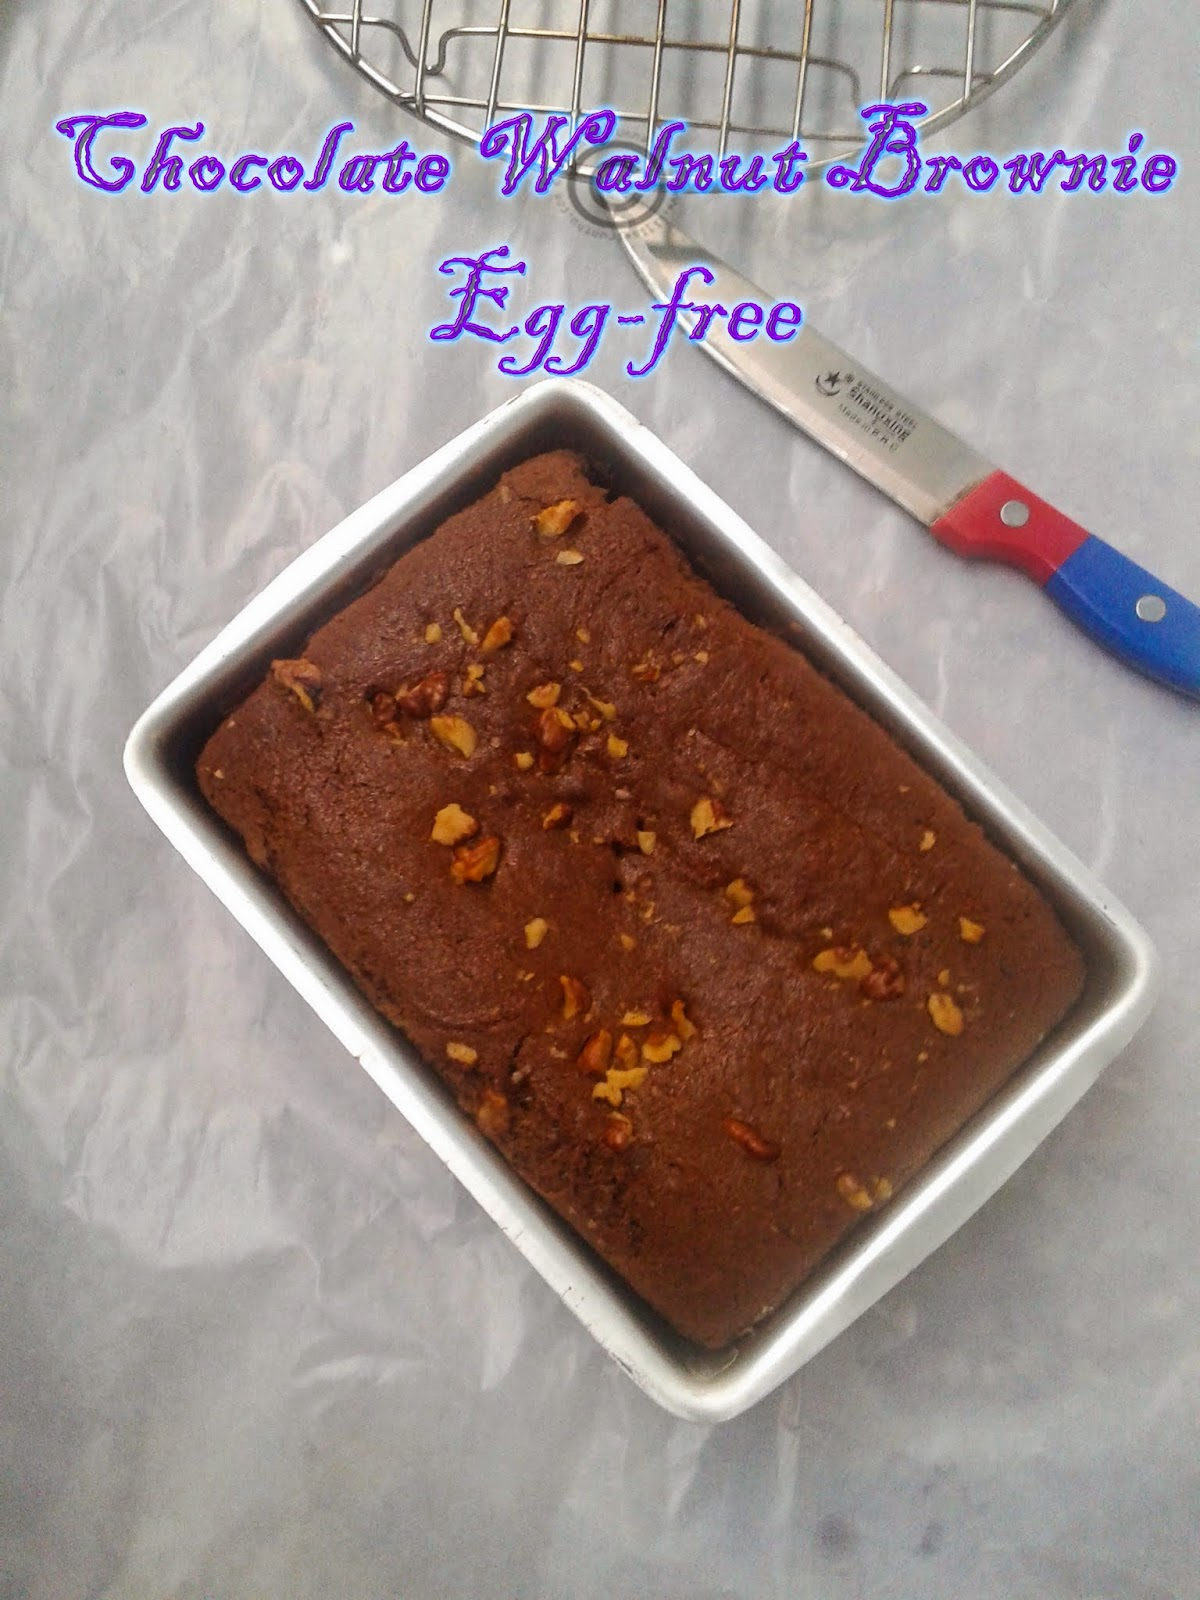 walnut-chocolate-brownie-eggless